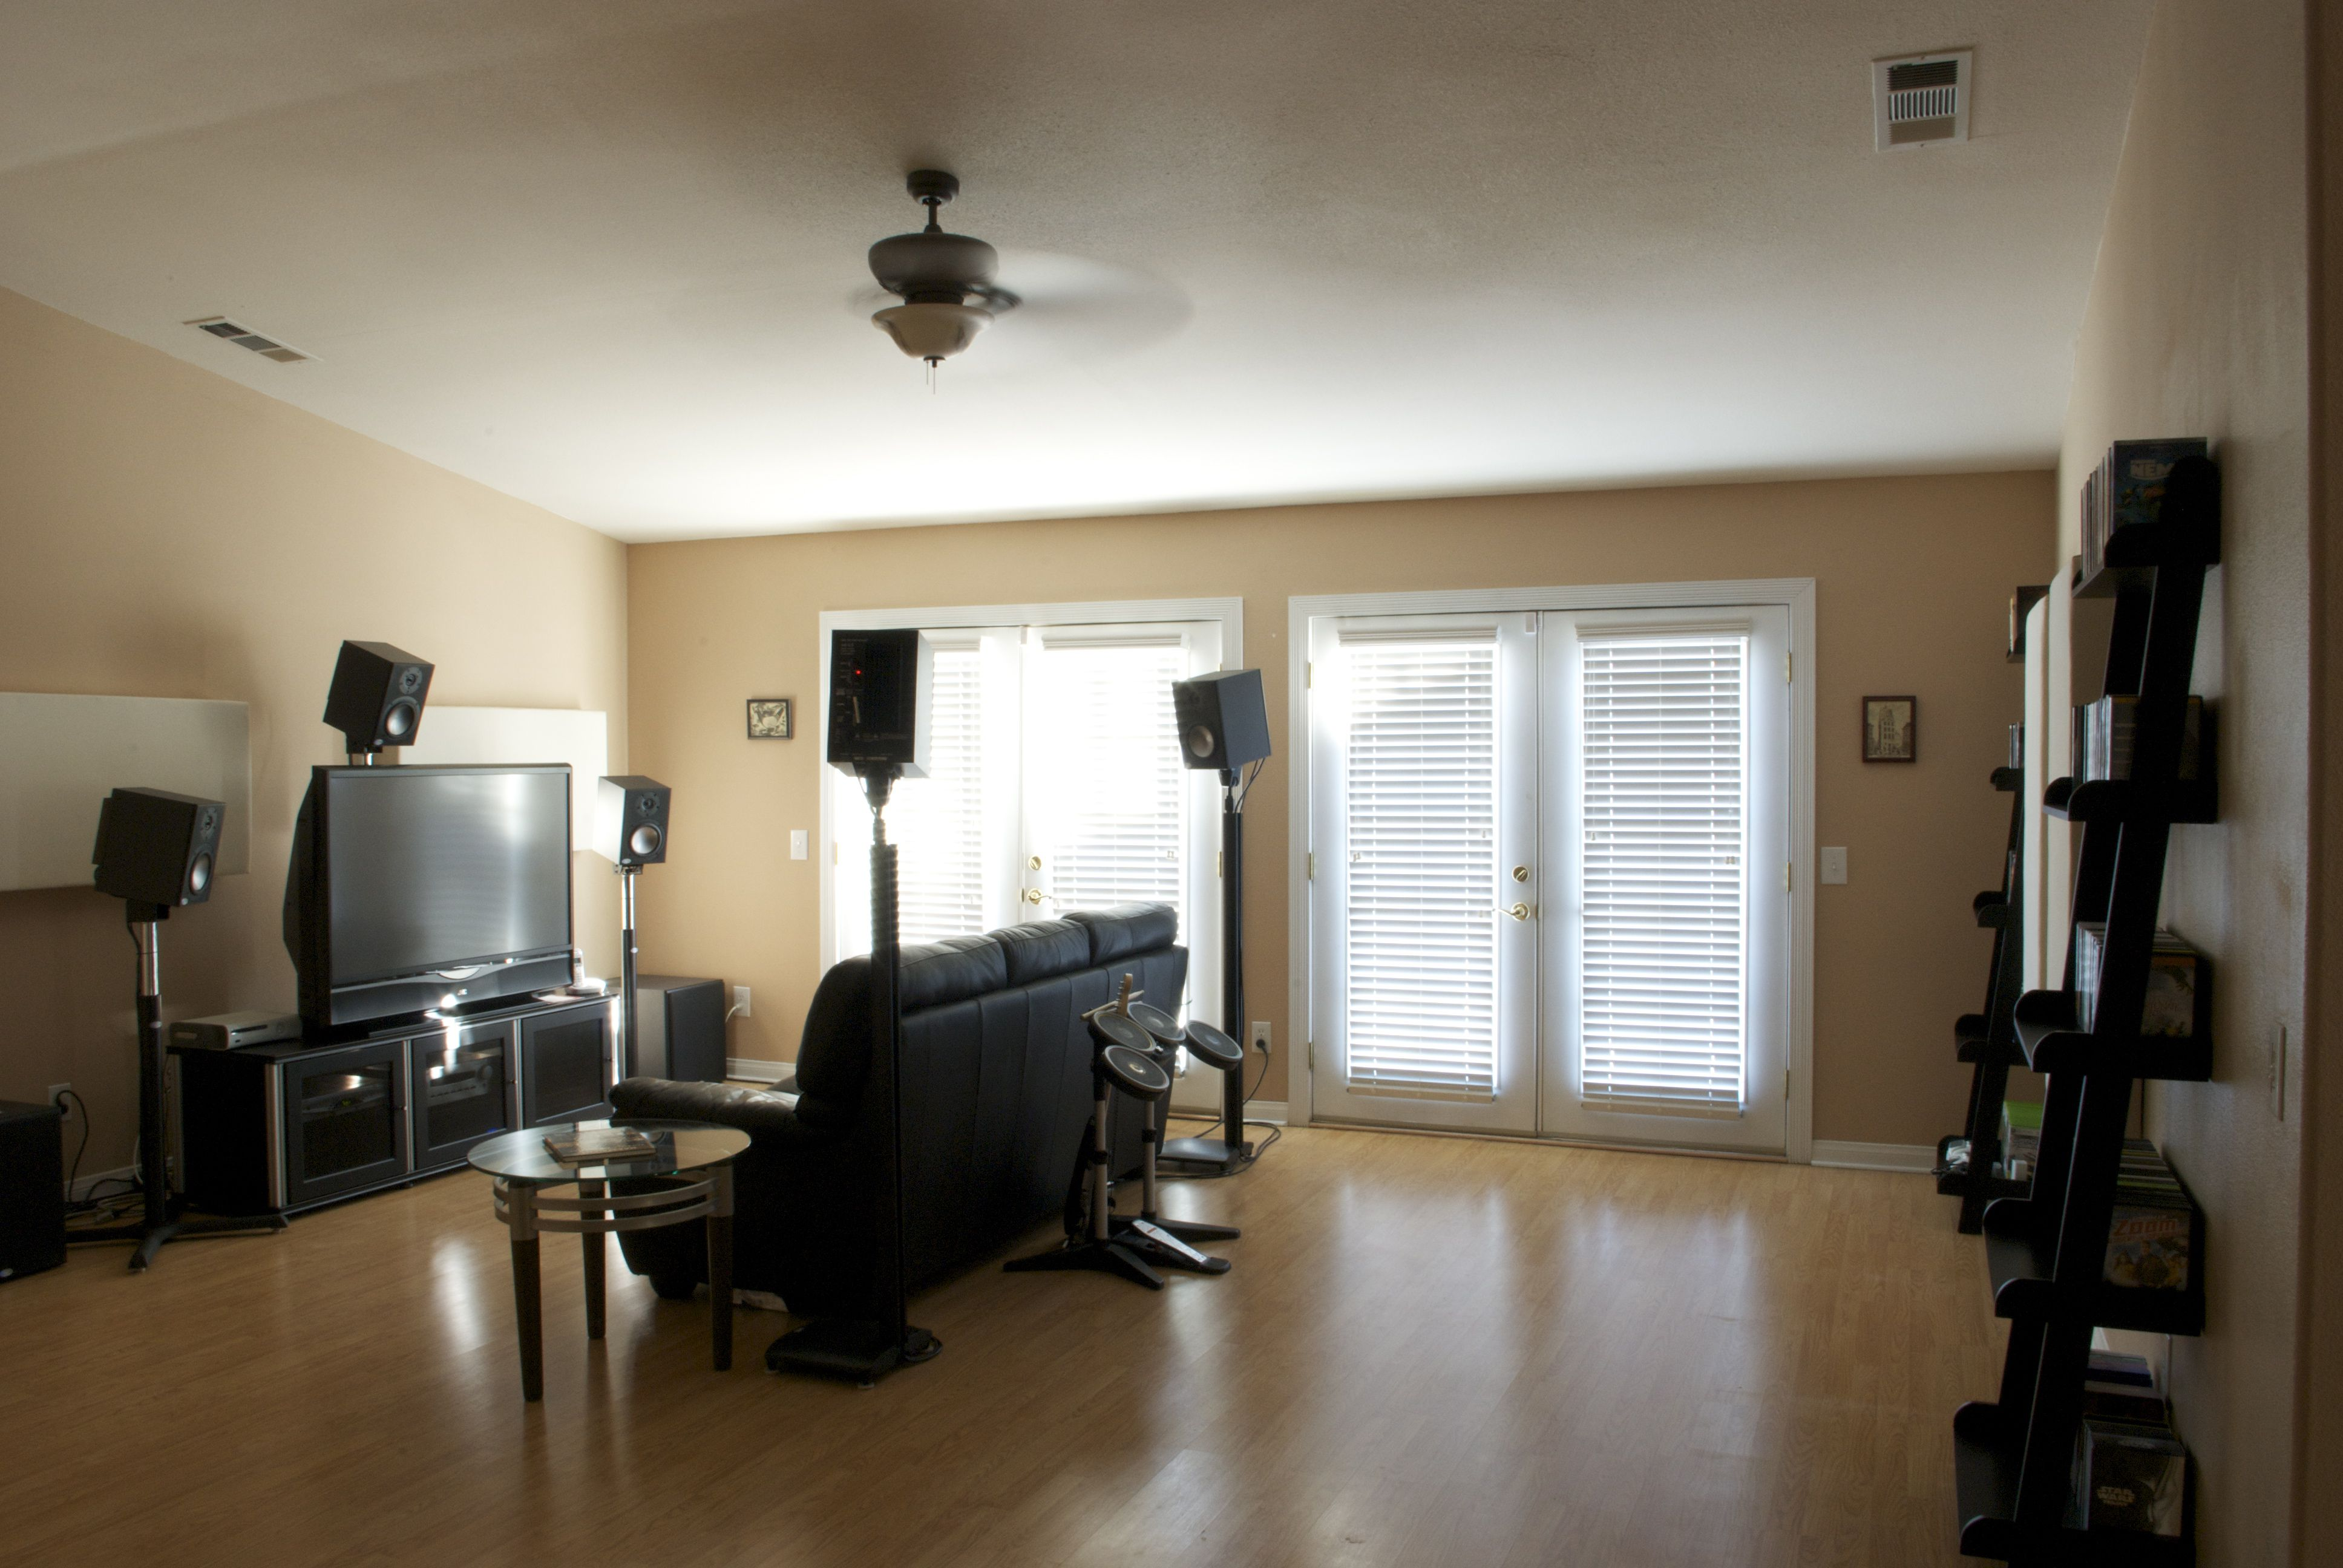 Garage Heater Placement The Benefits Of Using Multiple Subwoofers